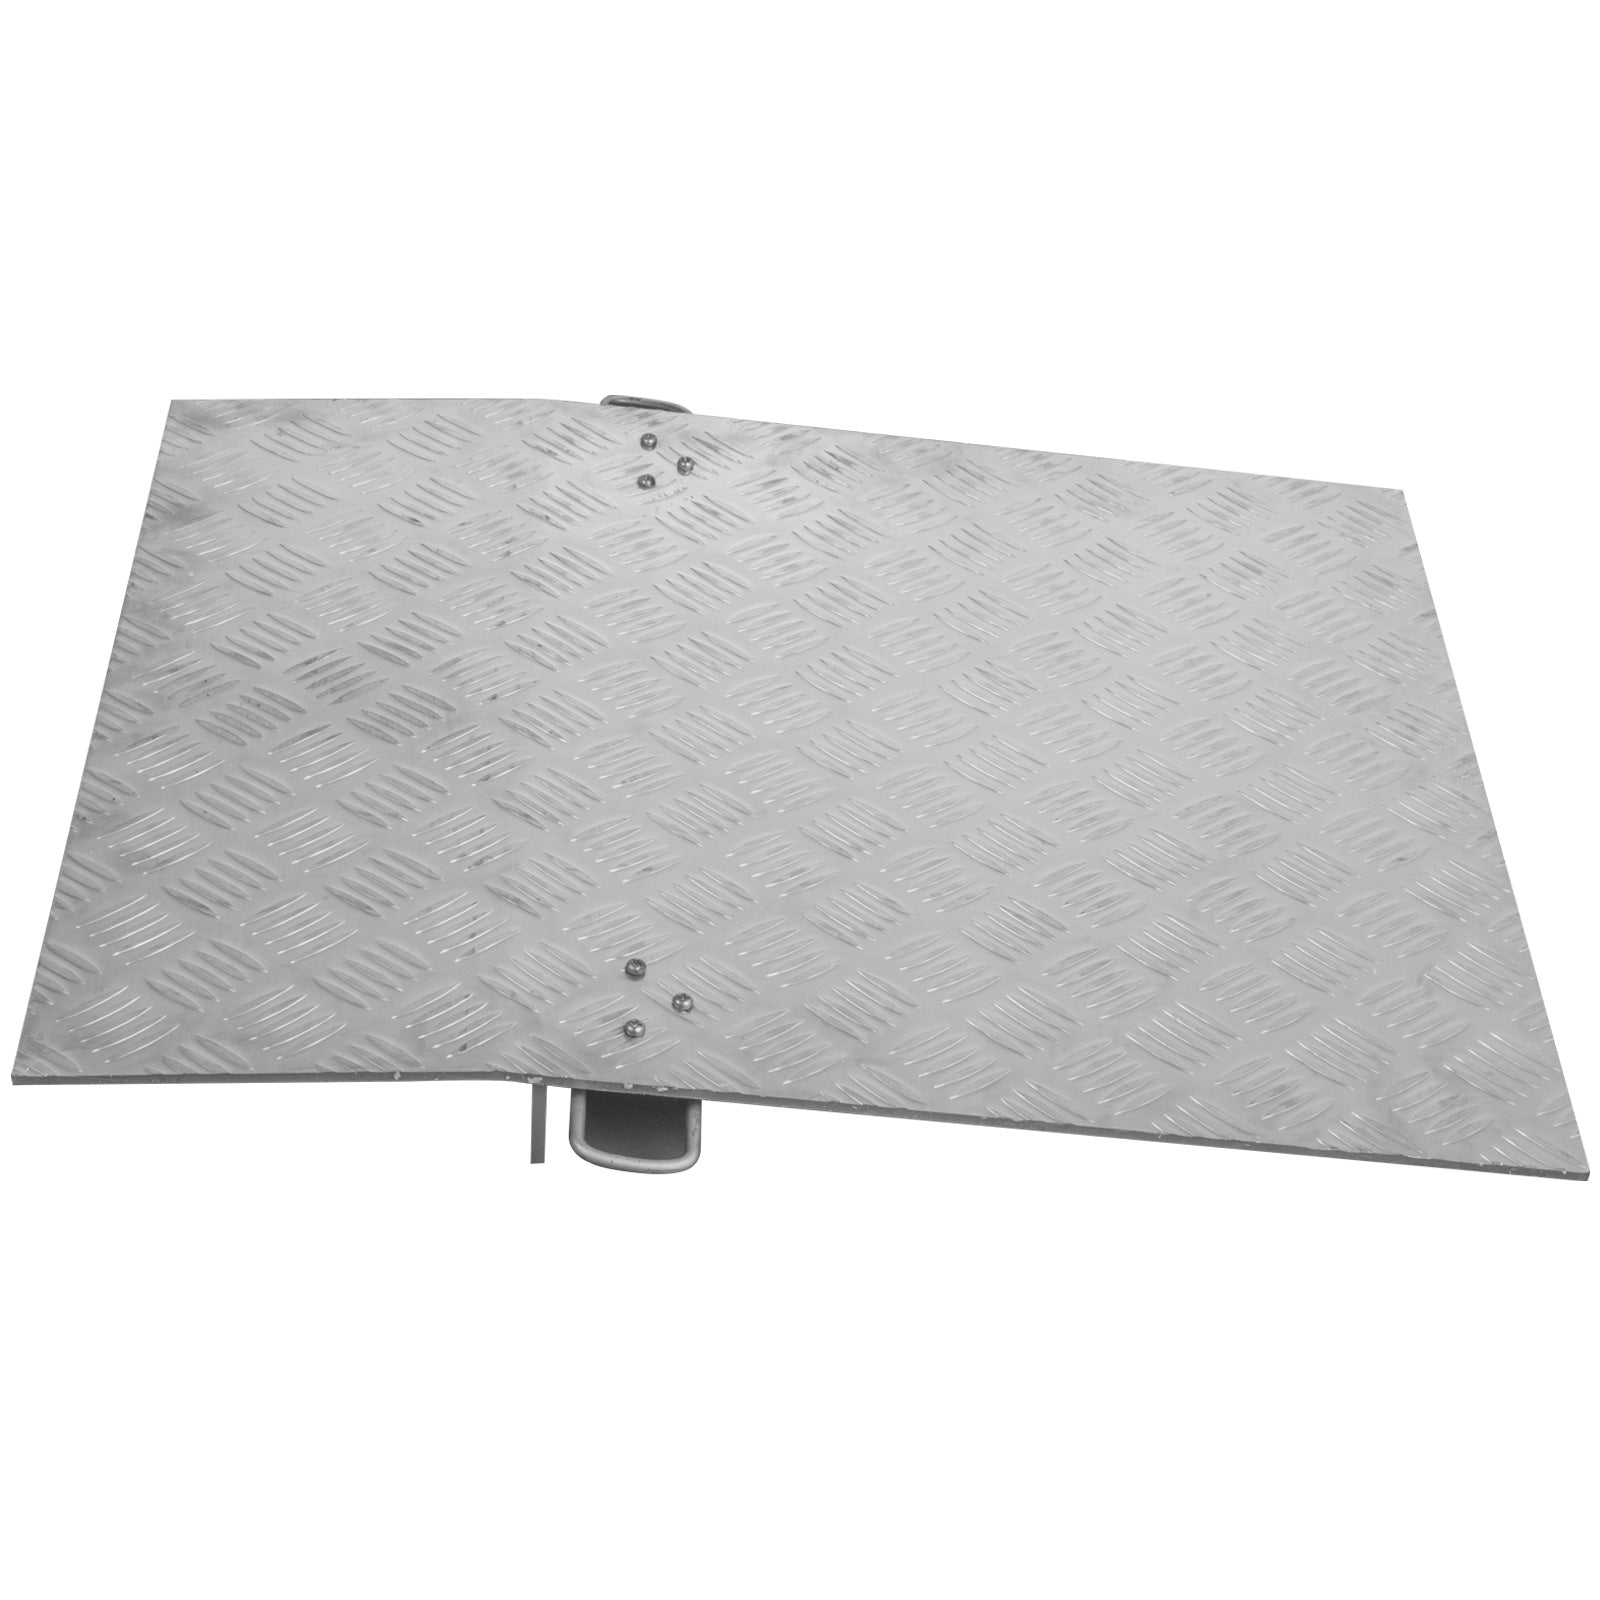 3000lb Aluminum Hand Truck Dock Plate 24x30in Dockplate Curb Ramp